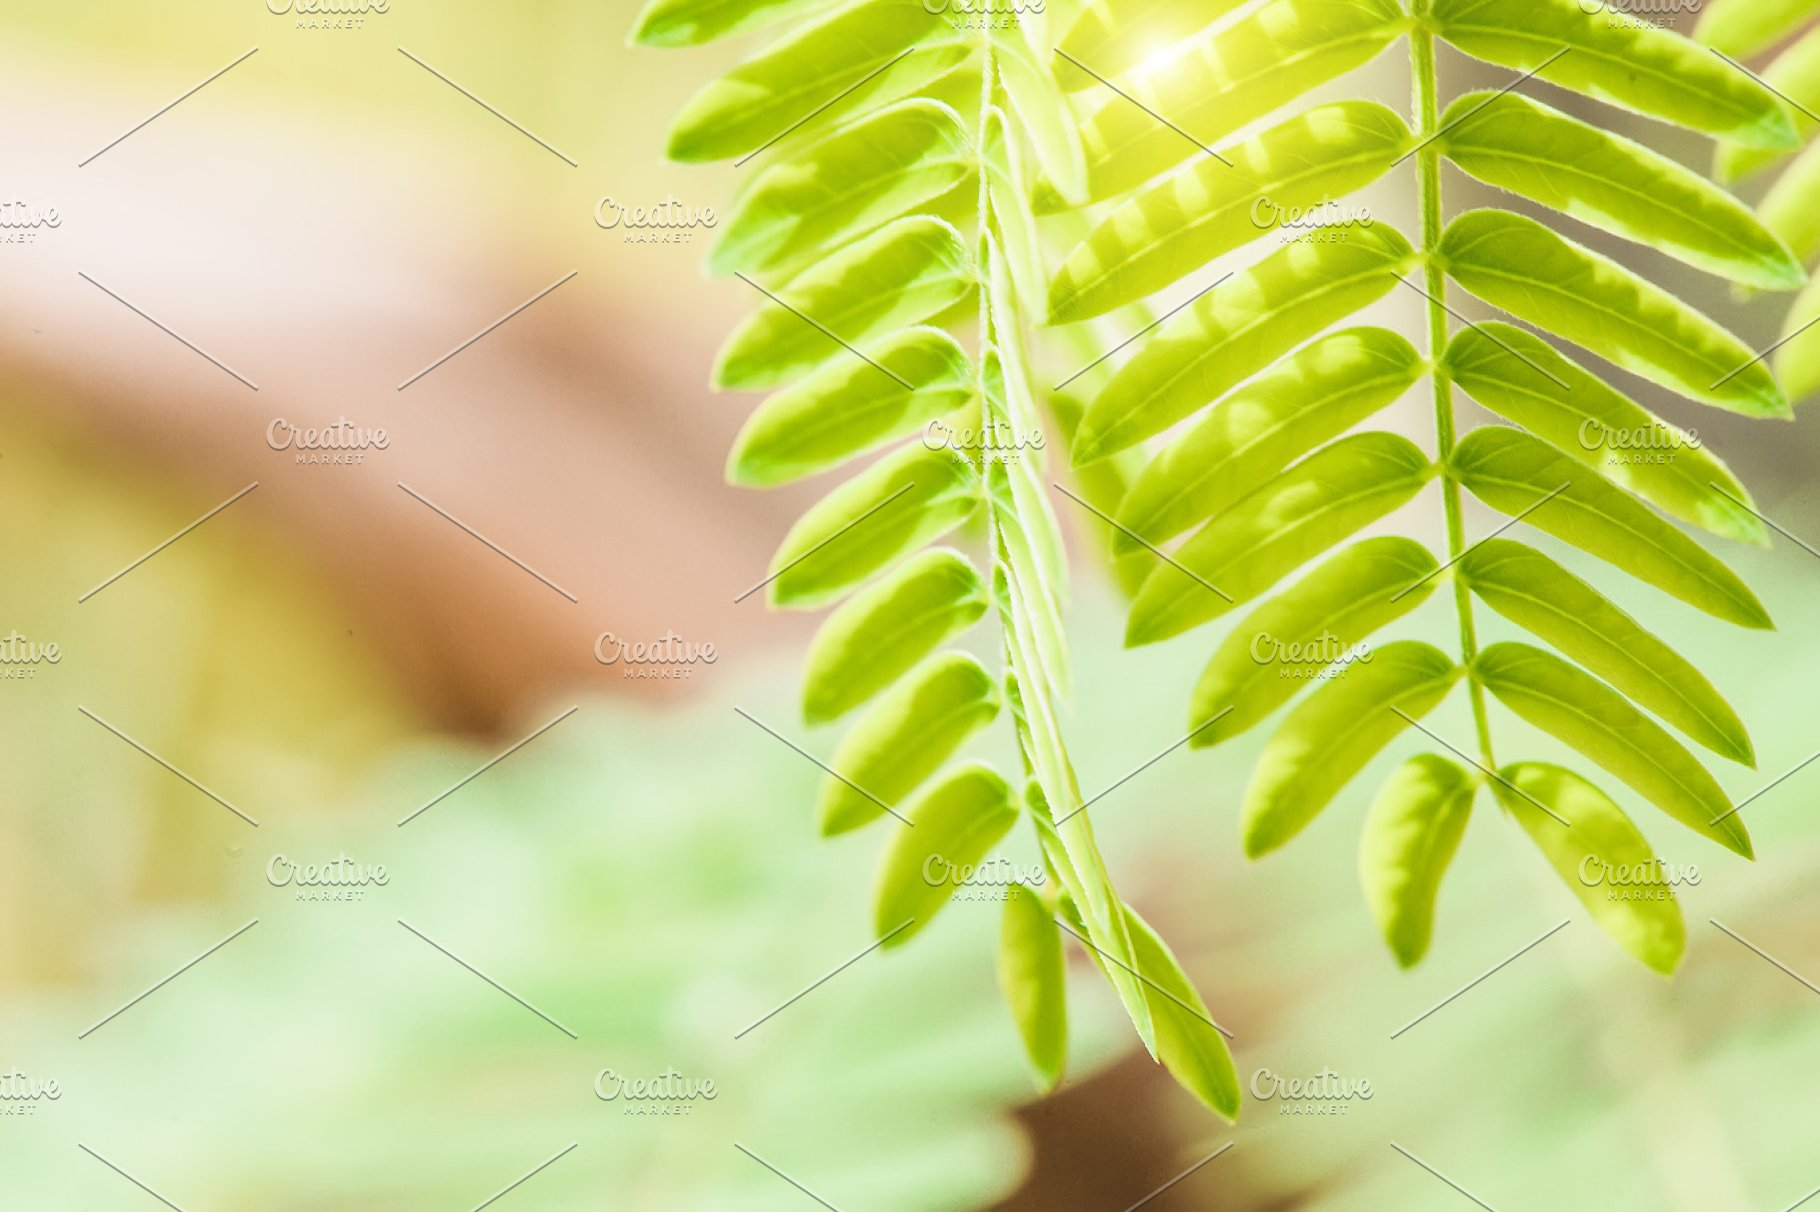 Acacia Leaves At Blurred Background Nature Photos Creative Market